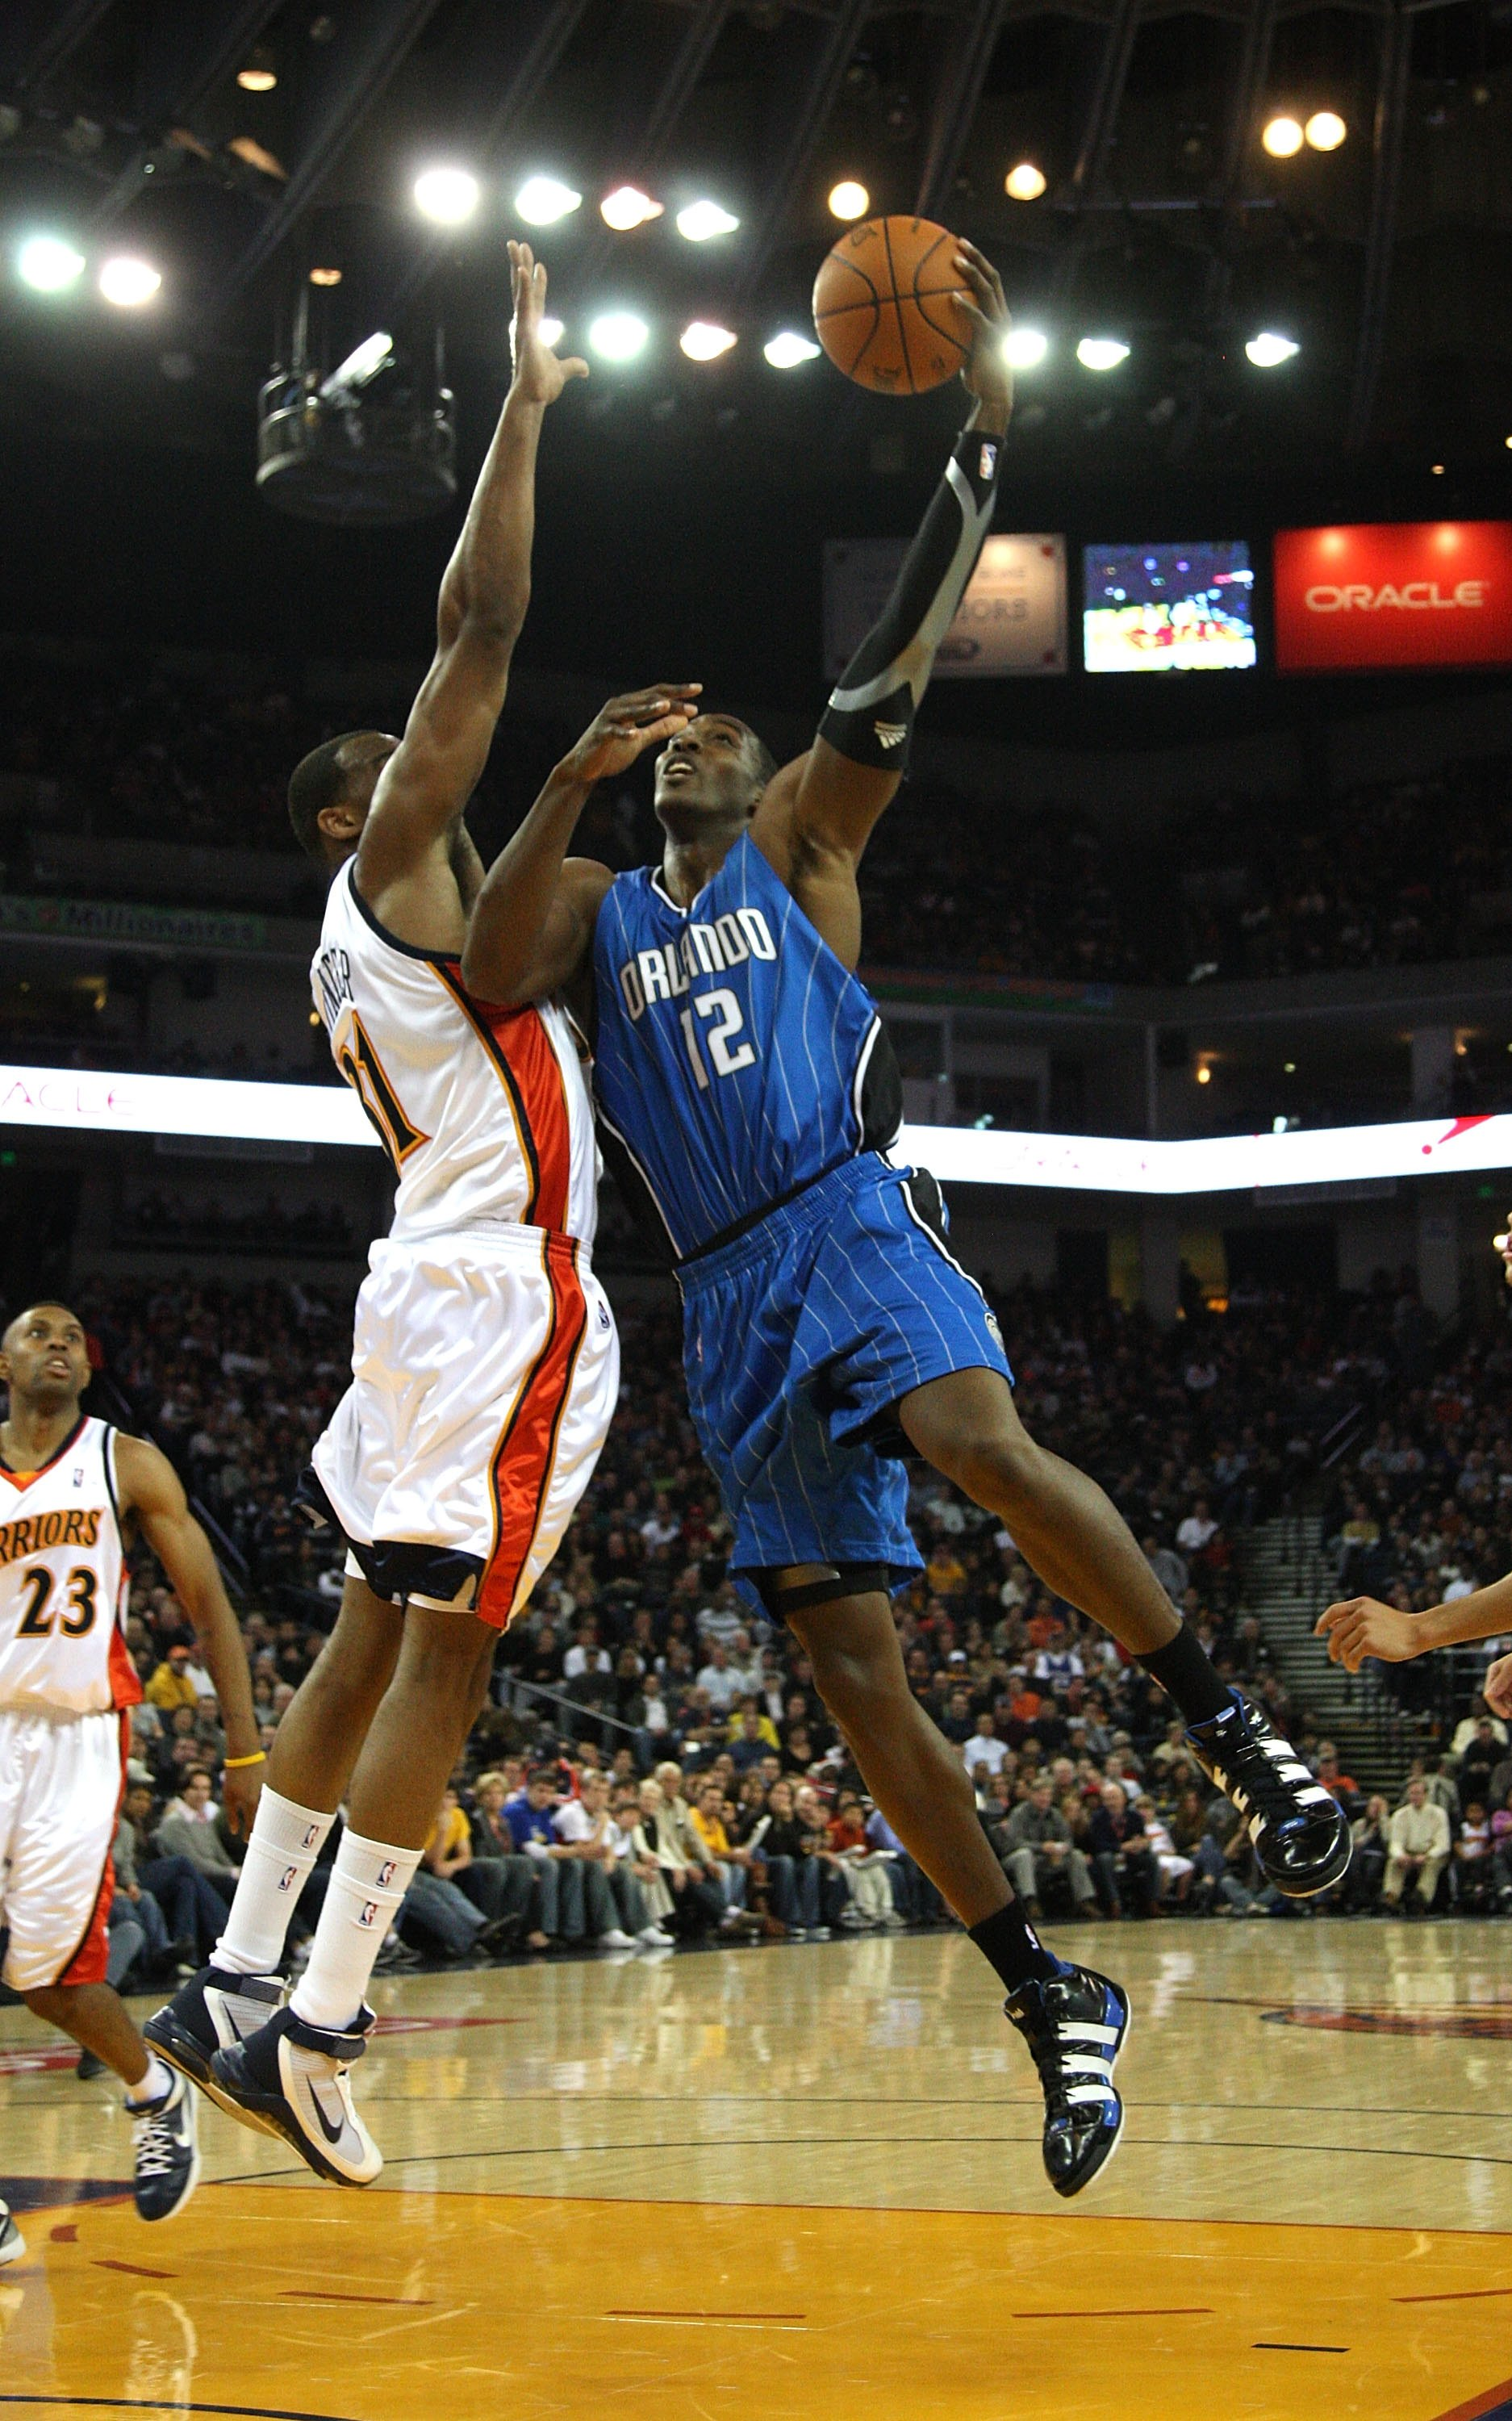 OAKLAND, CA - DECEMBER 05:  Dwight Howard #12 of the Orlando Magic in action against the Golden State Warriors during an NBA game at Oracle Arena on December 5, 2009 in Oakland, California. NOTE TO USER: User expressly acknowledges and agrees that, by dow